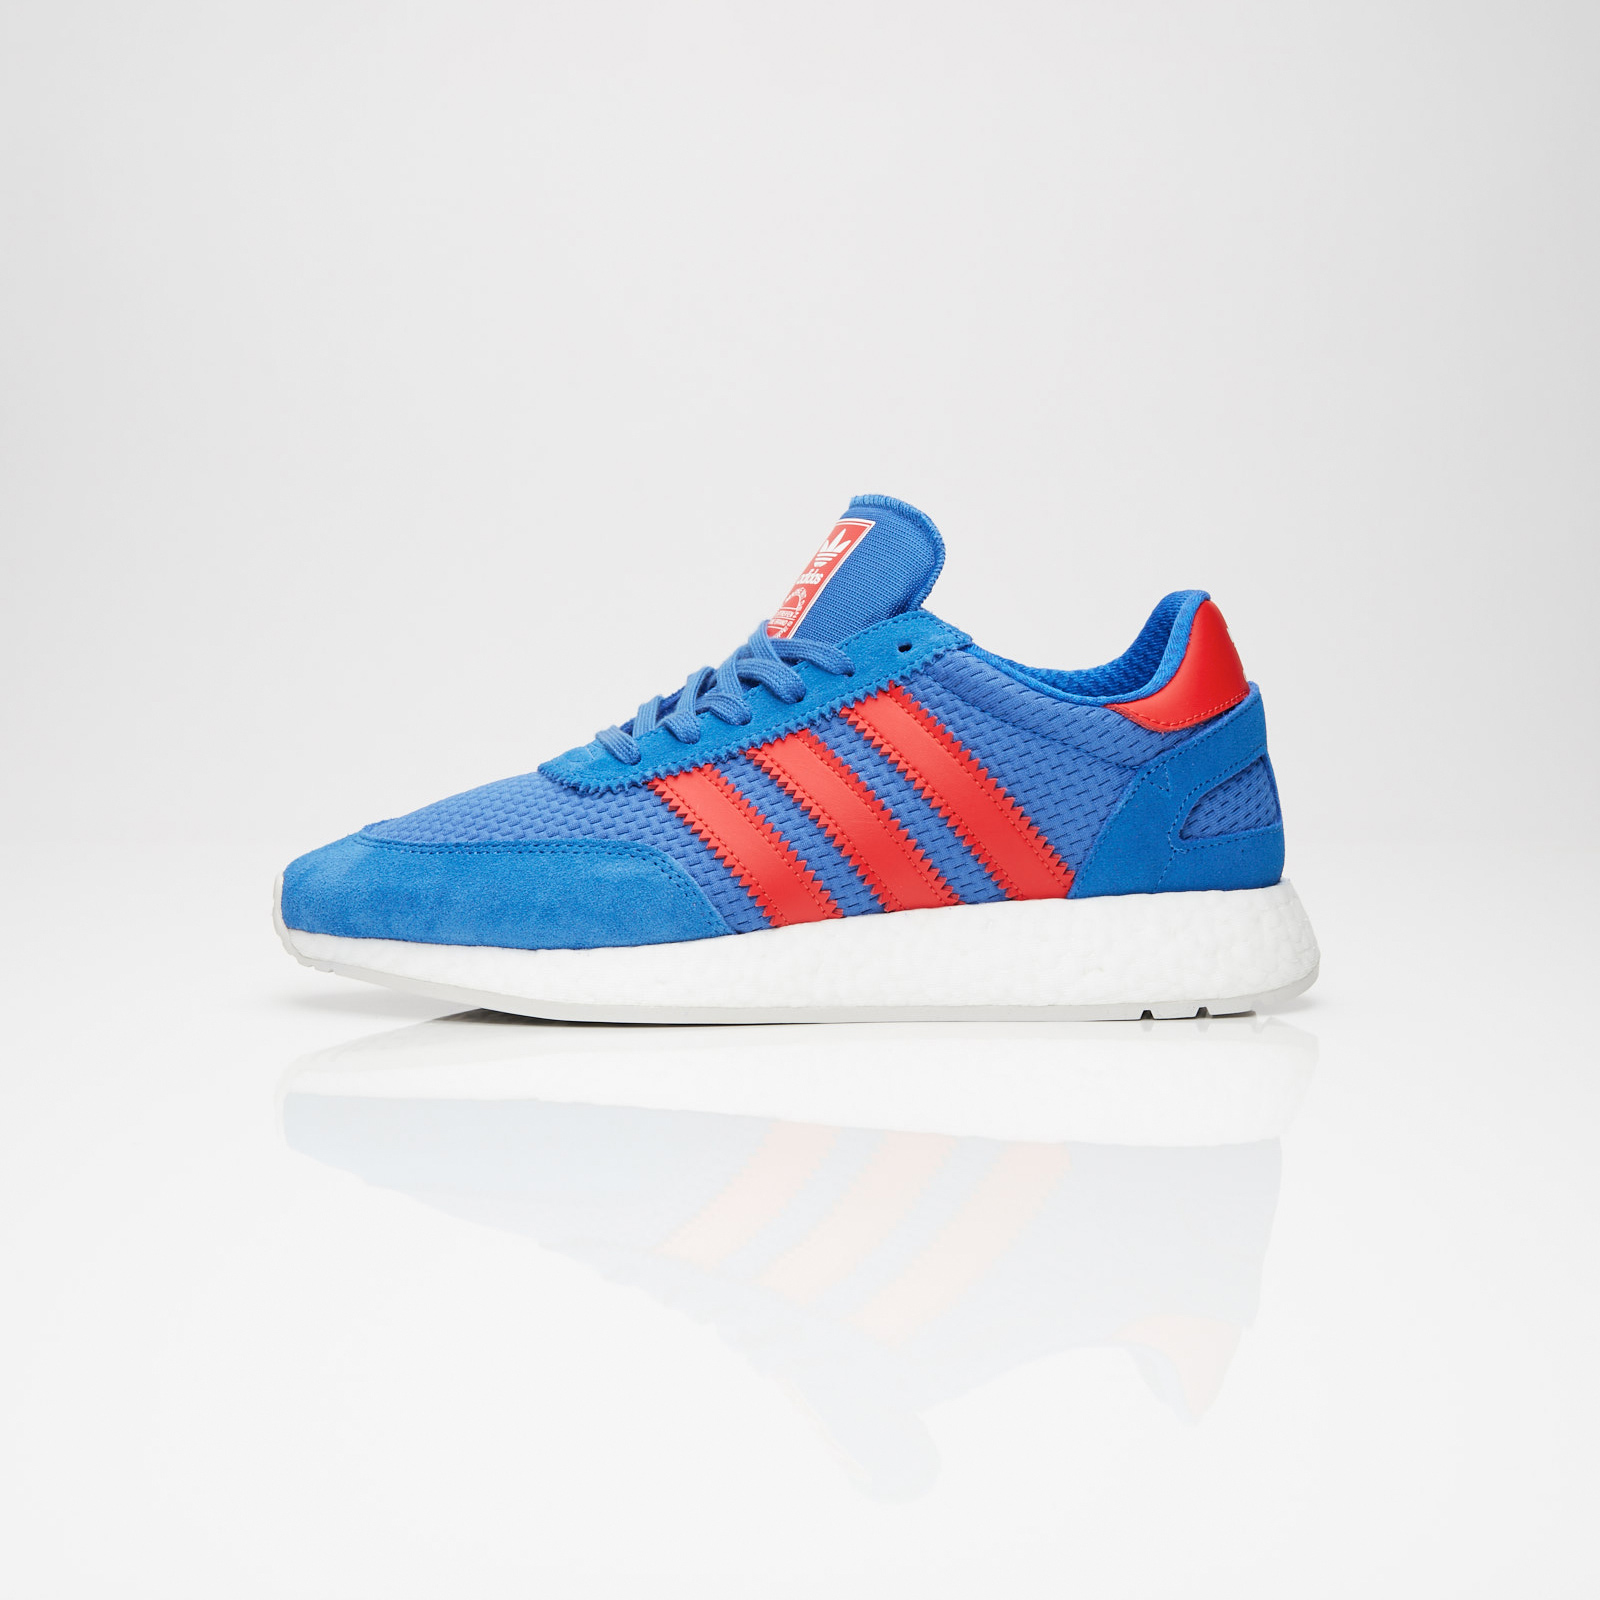 03-adidas-i-5923-hi-res-blue-red-d96605